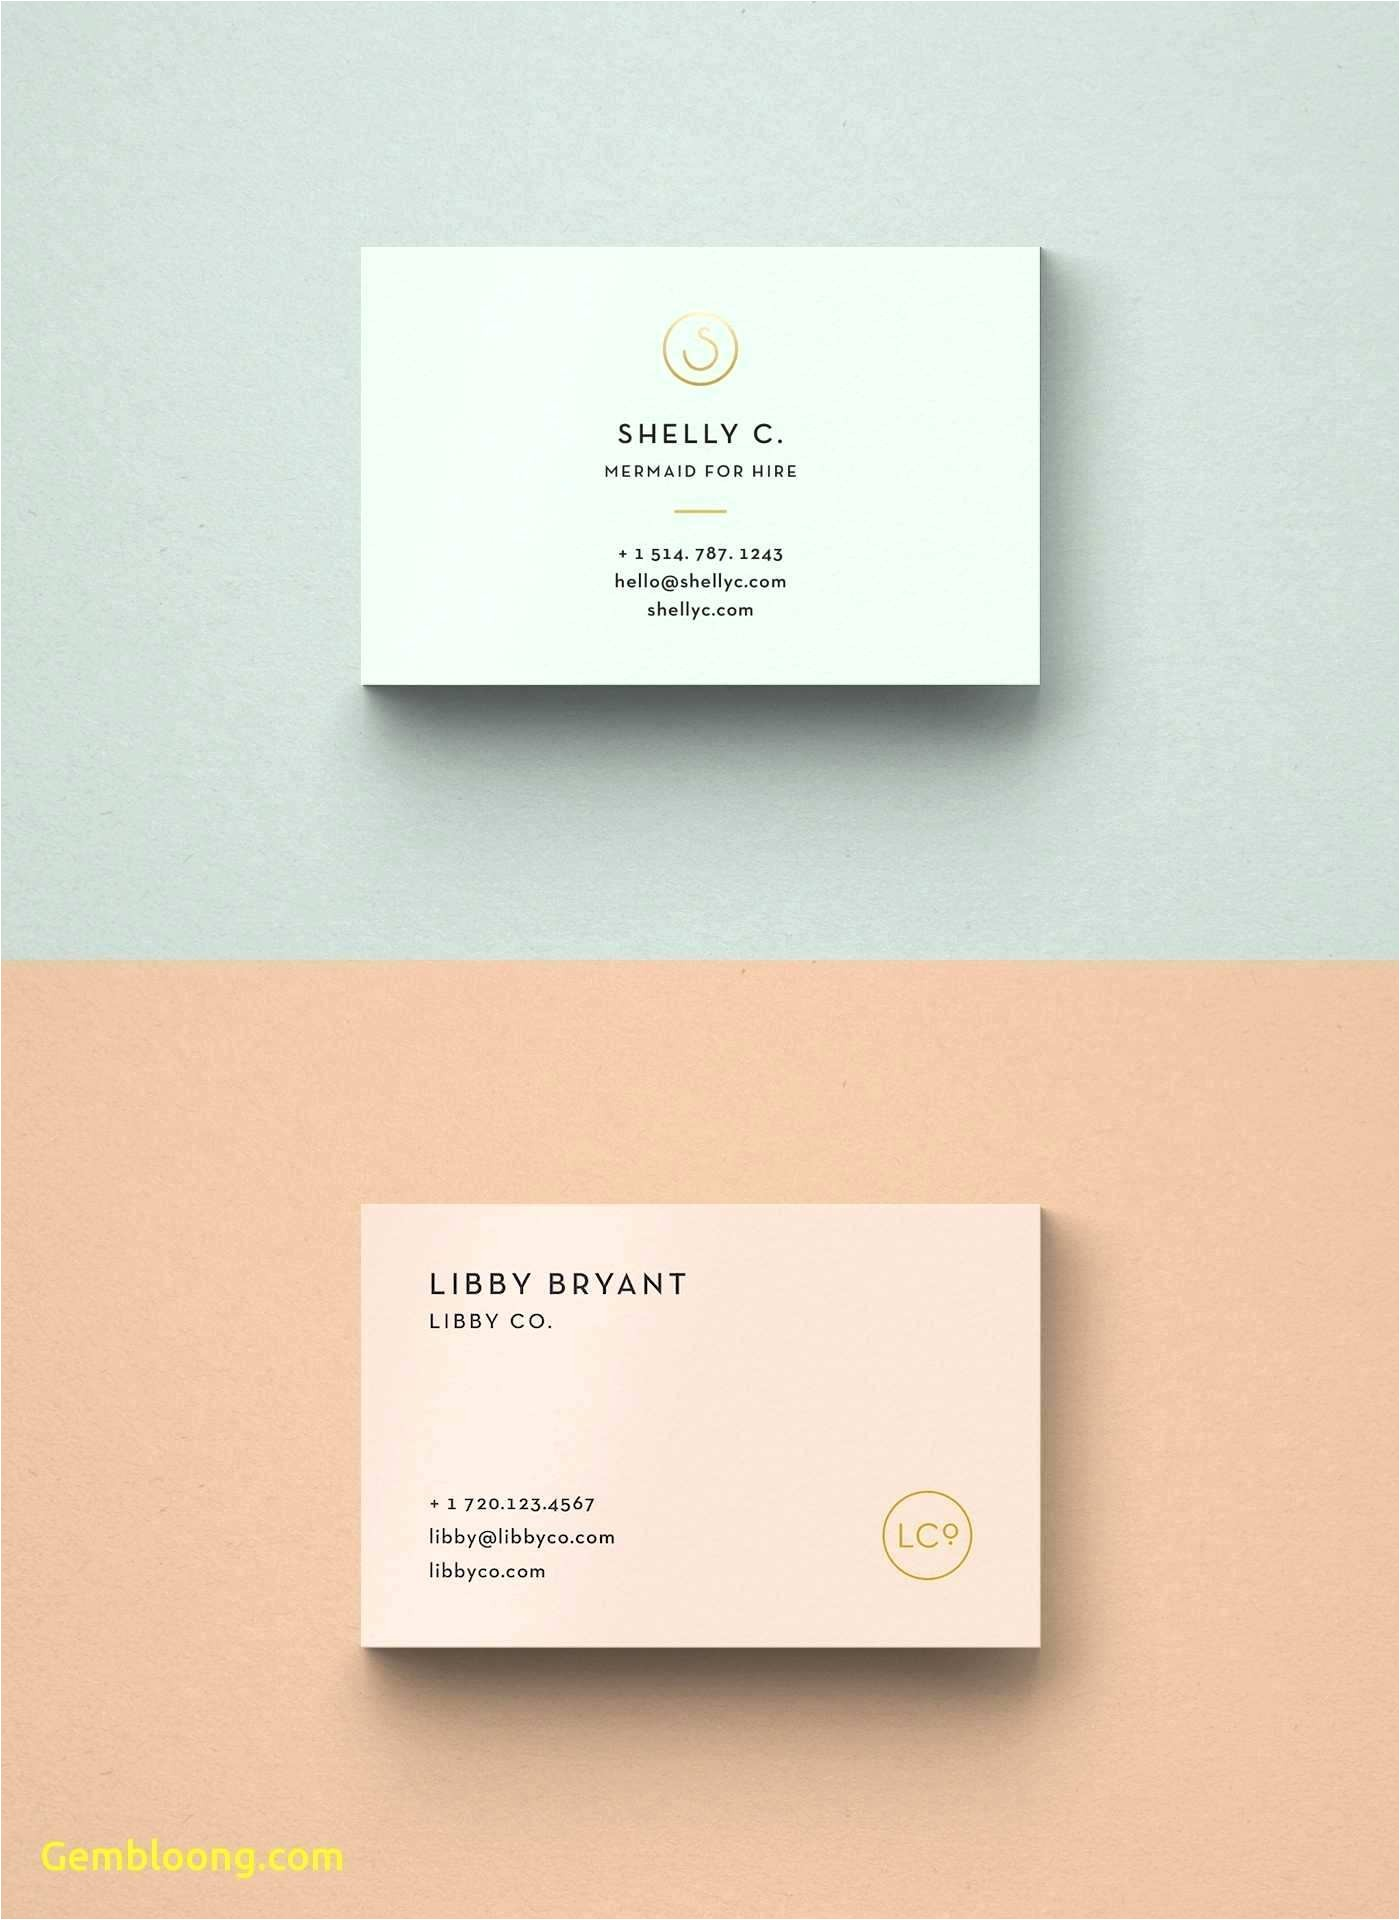 avery vertical business card template inspirational top result 50 new avery template 5164 download graphy 2018 sjd8